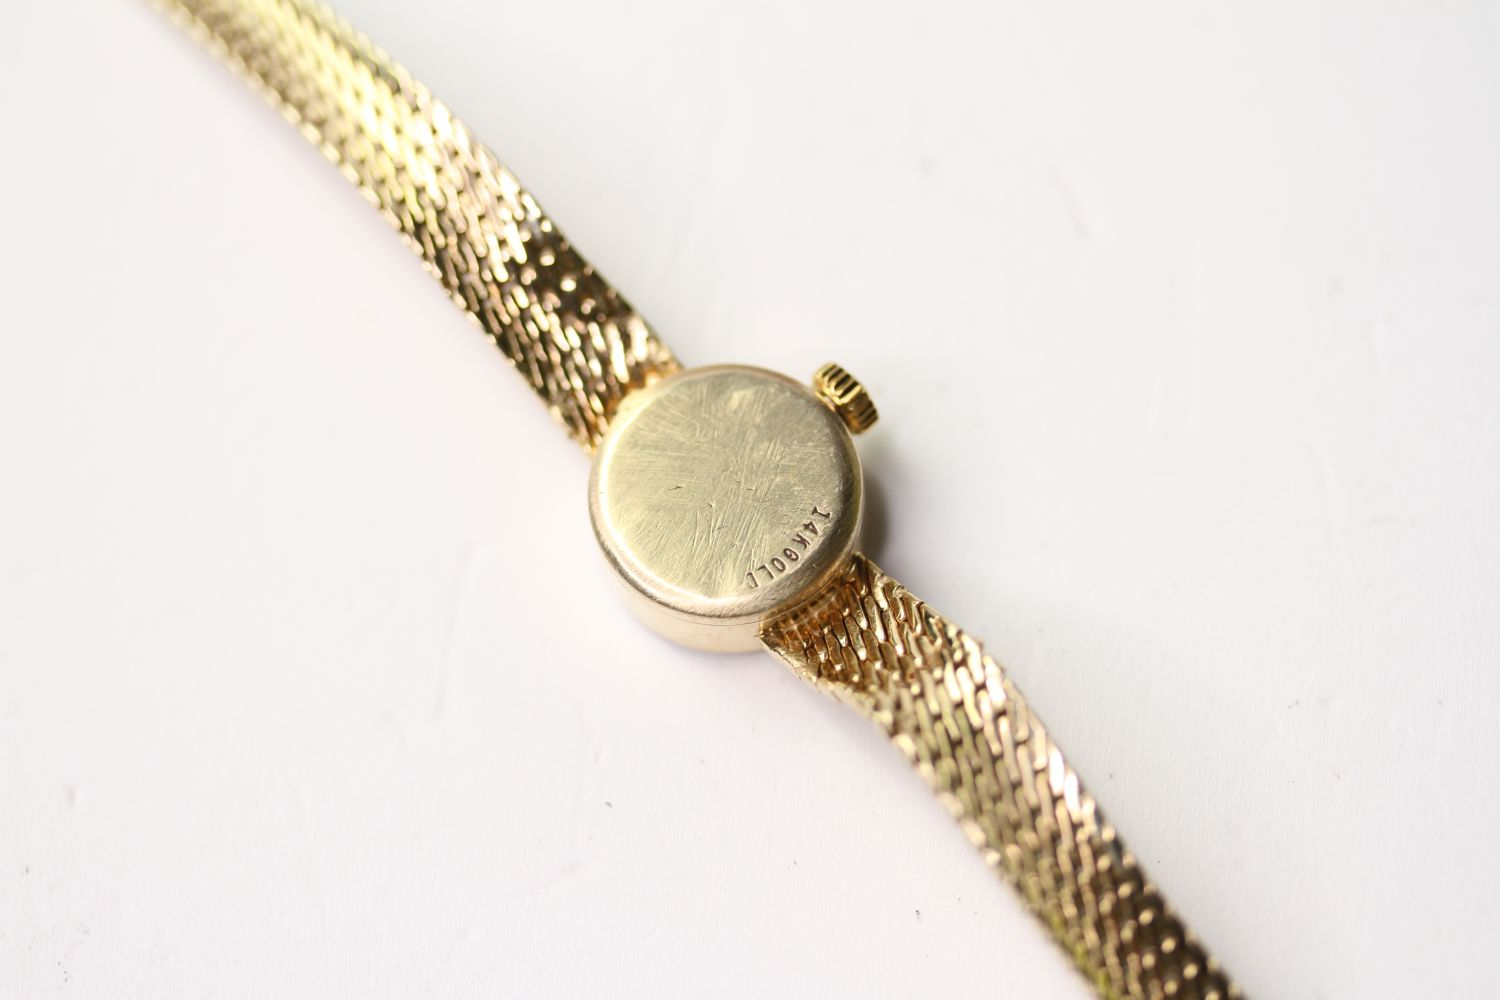 VINTAGE OMEGA WRISTWATCH, circular silver dial with baton hour markers, 14mm 14ct gold case, snap - Image 3 of 3